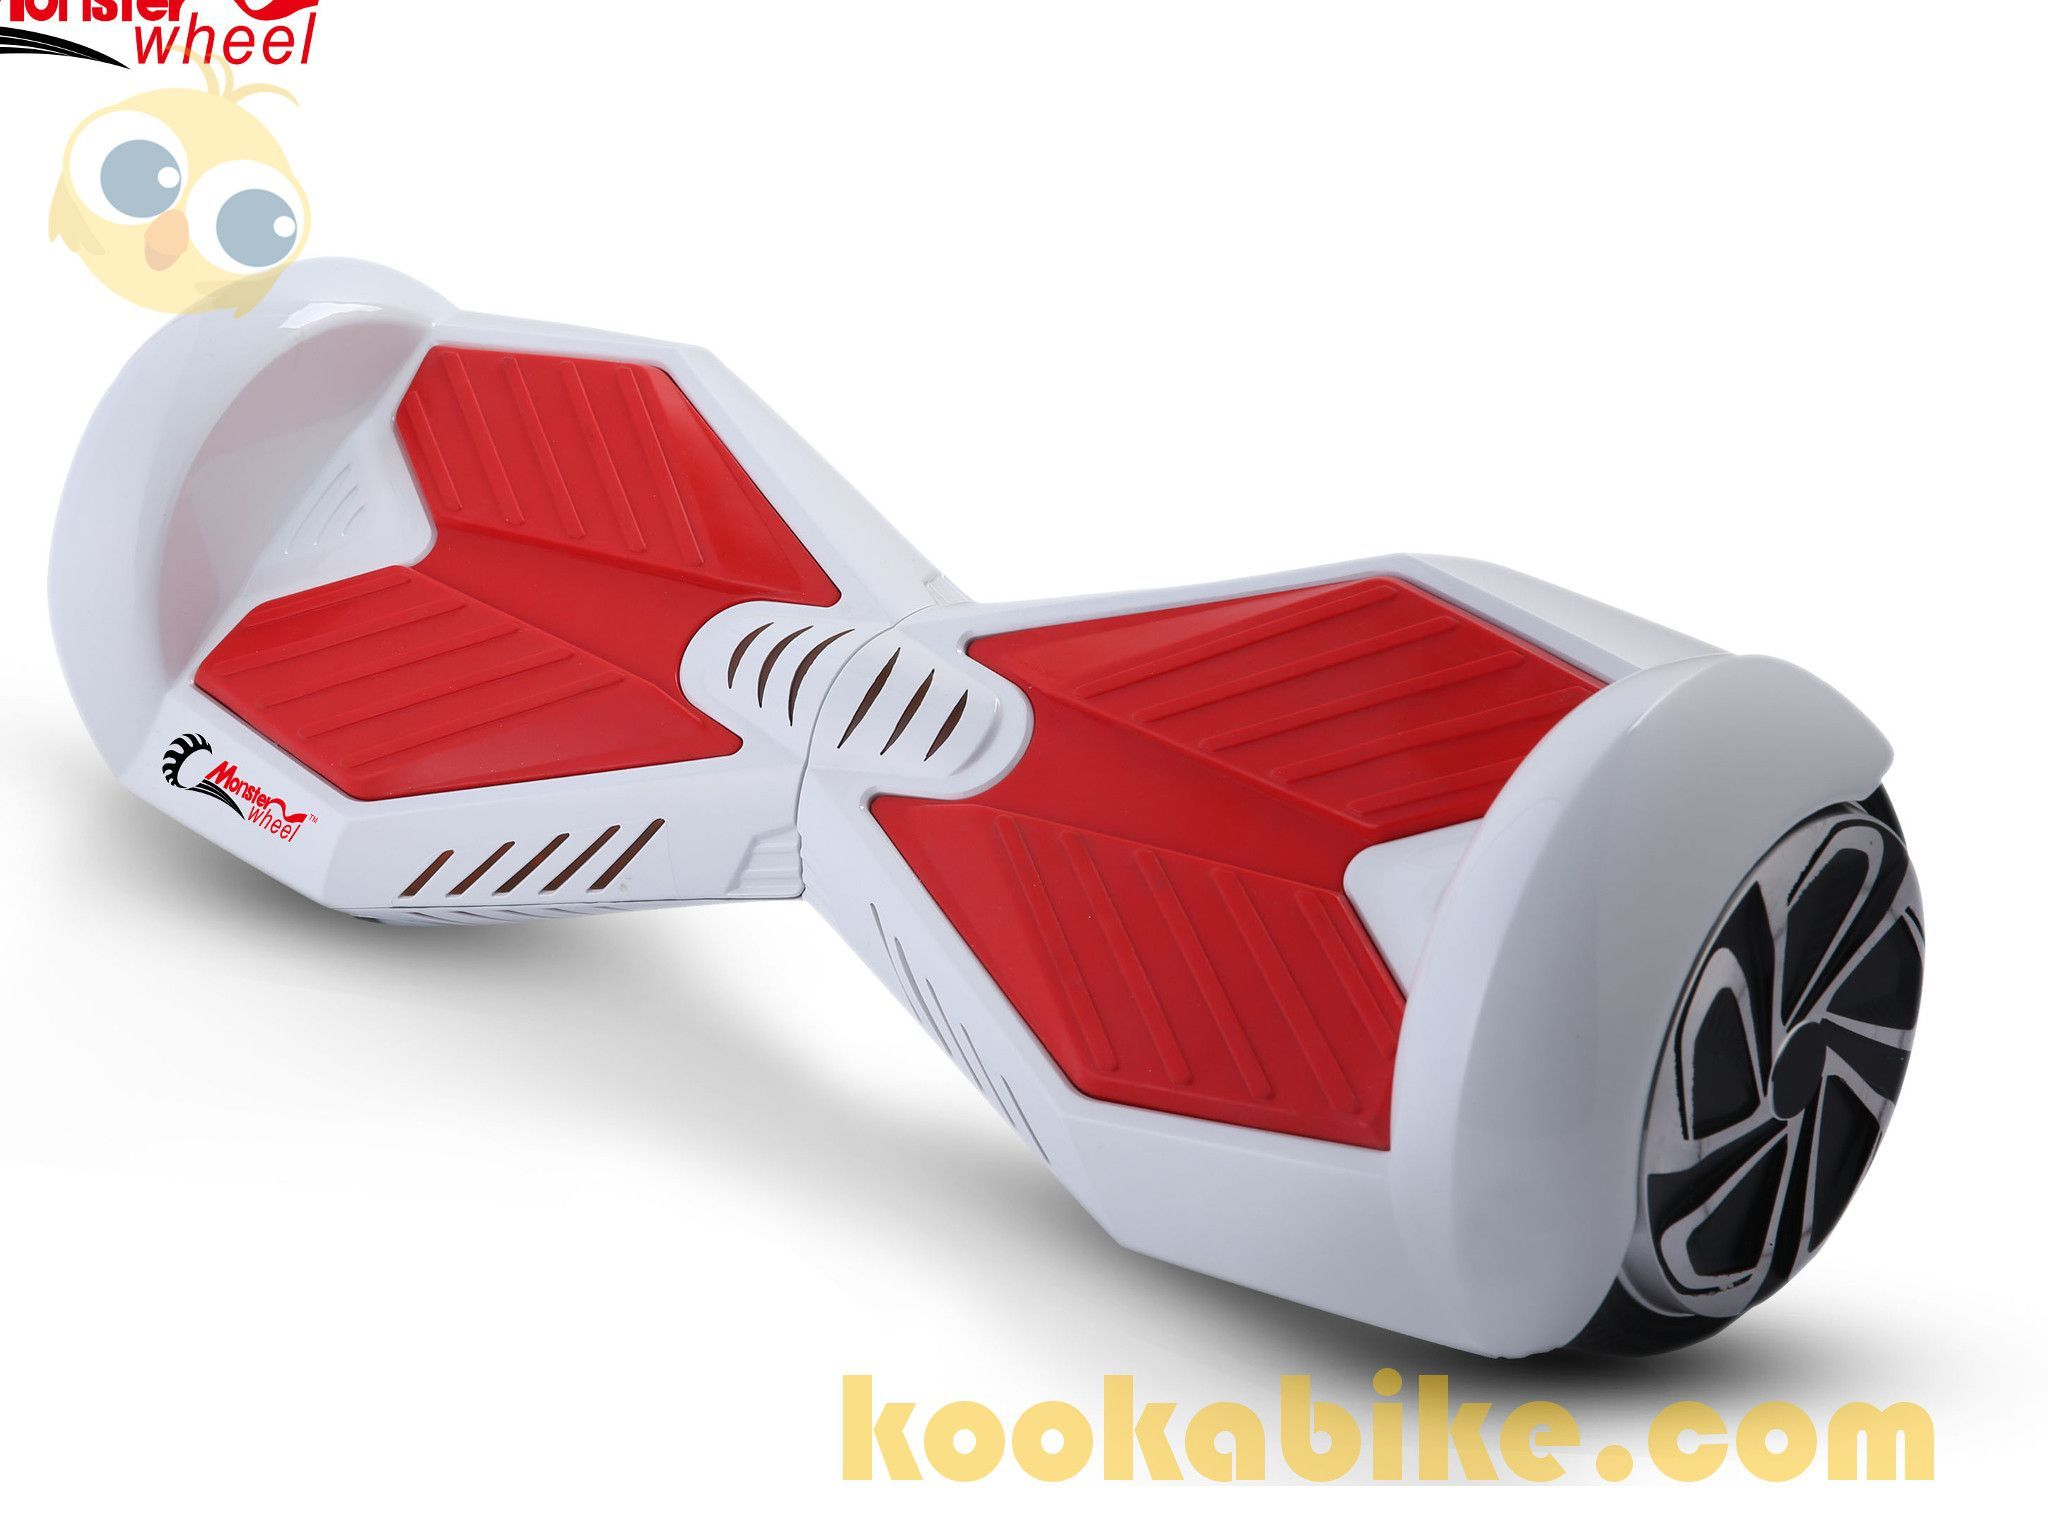 MONSTER WHEELS M3 Electric Self Balancing Scooter/Hoverboard/Segway-1 year warranty-Free Shipping!